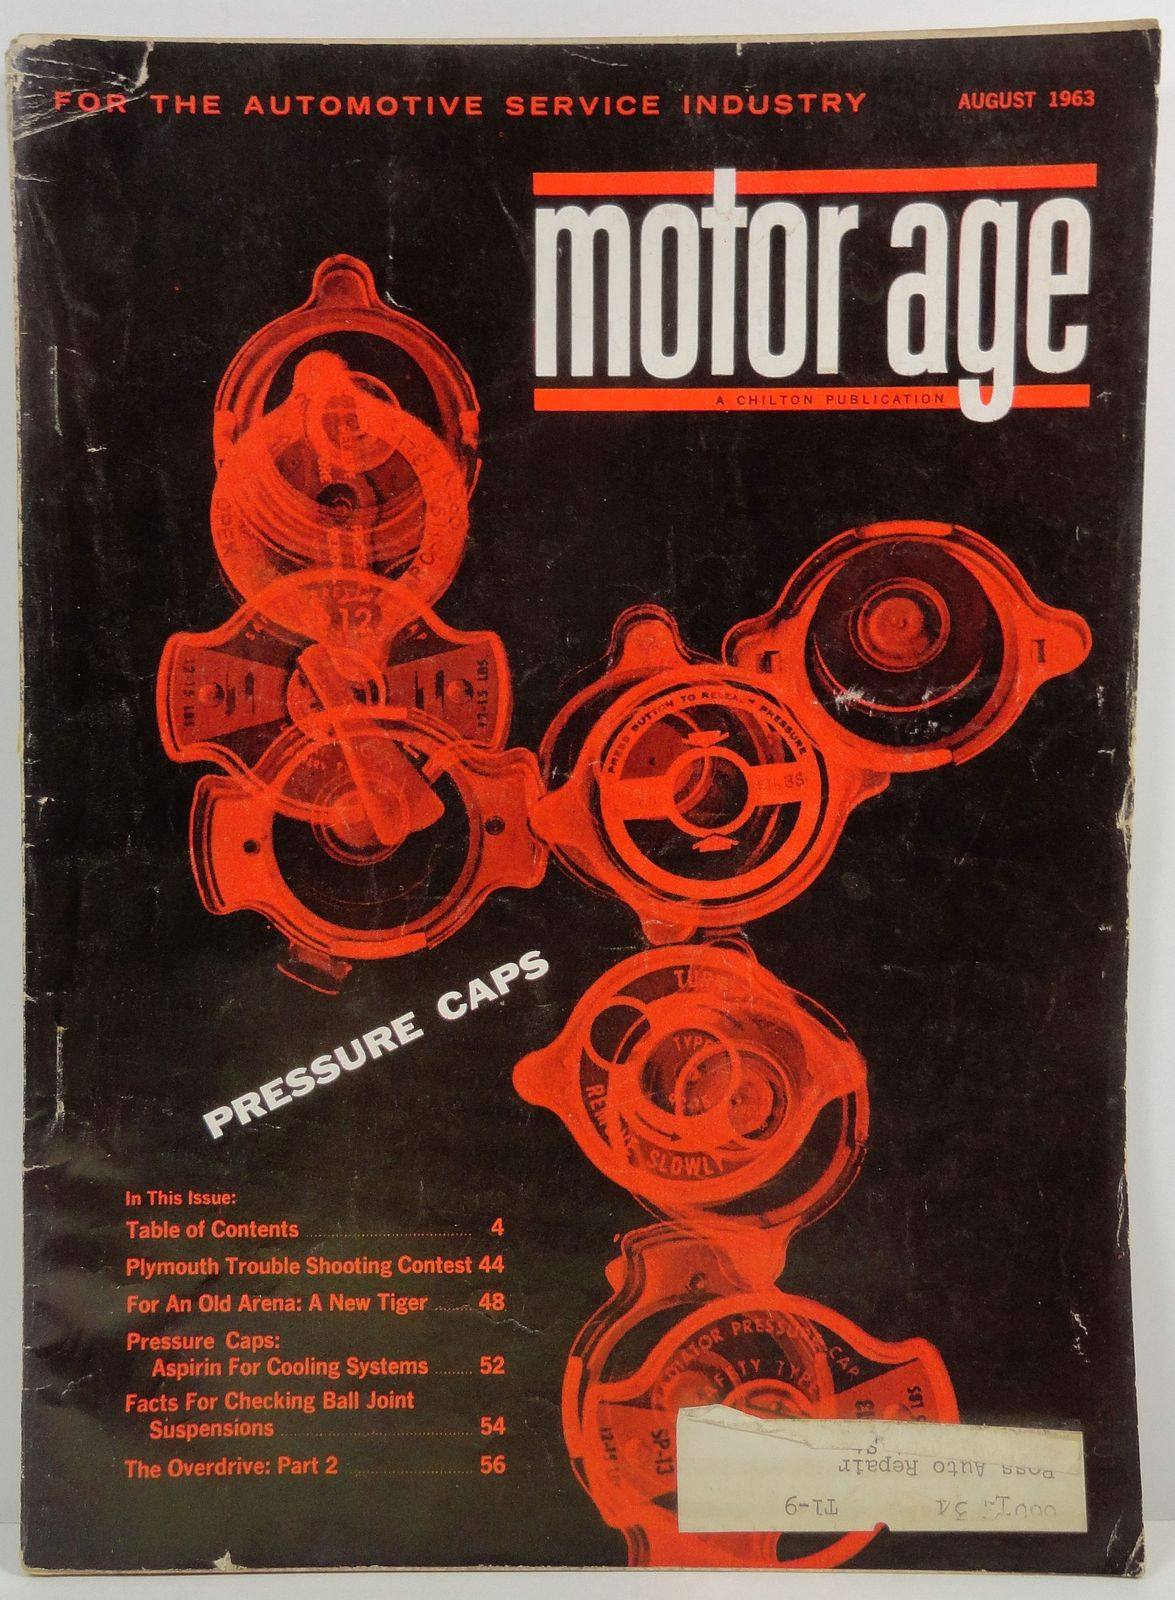 Motor Age August 1963 A Chilton Publication Pressure Caps